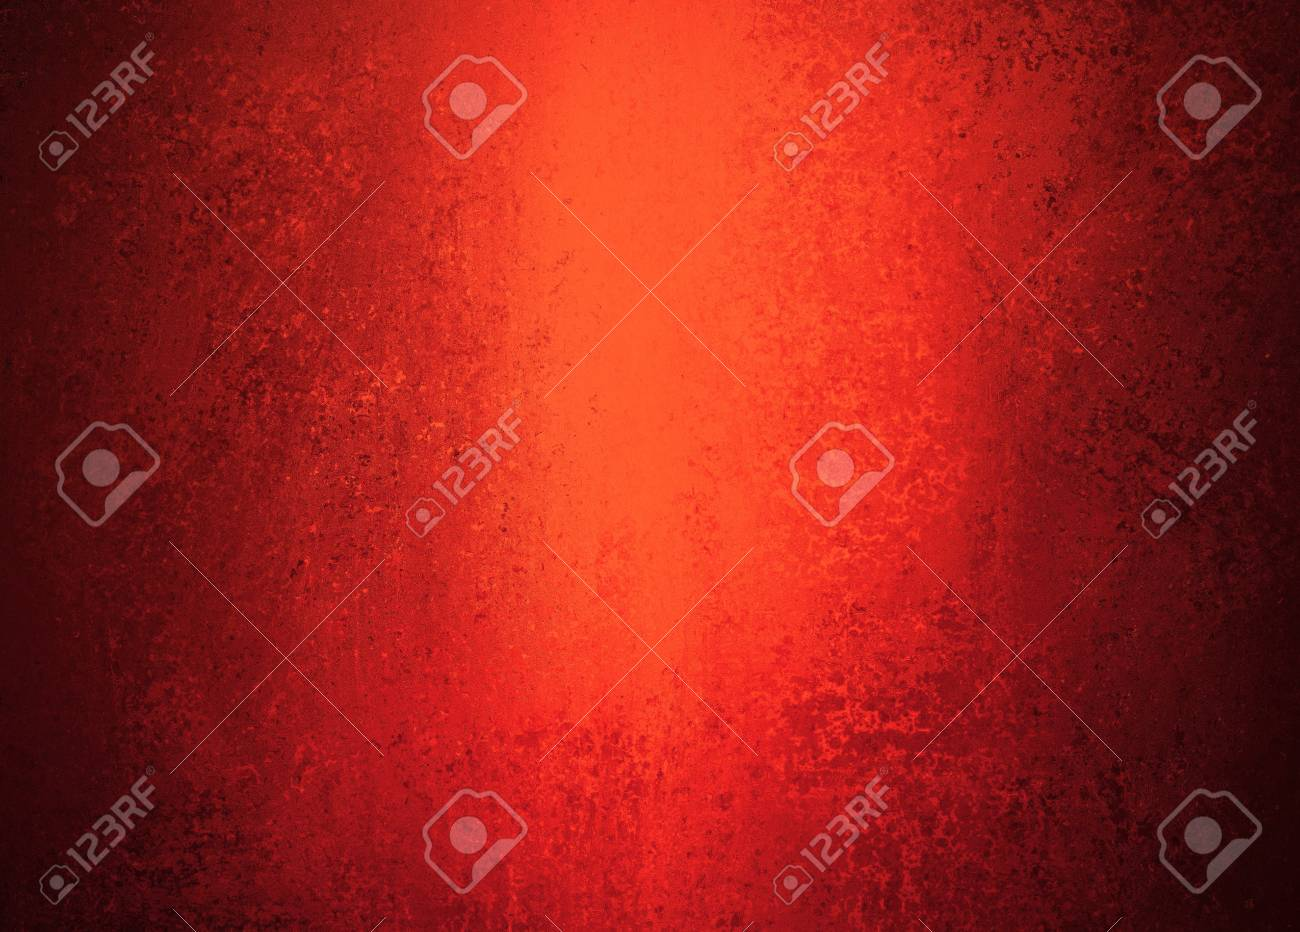 red banner background with shiny painted metal and black edges - 120506552